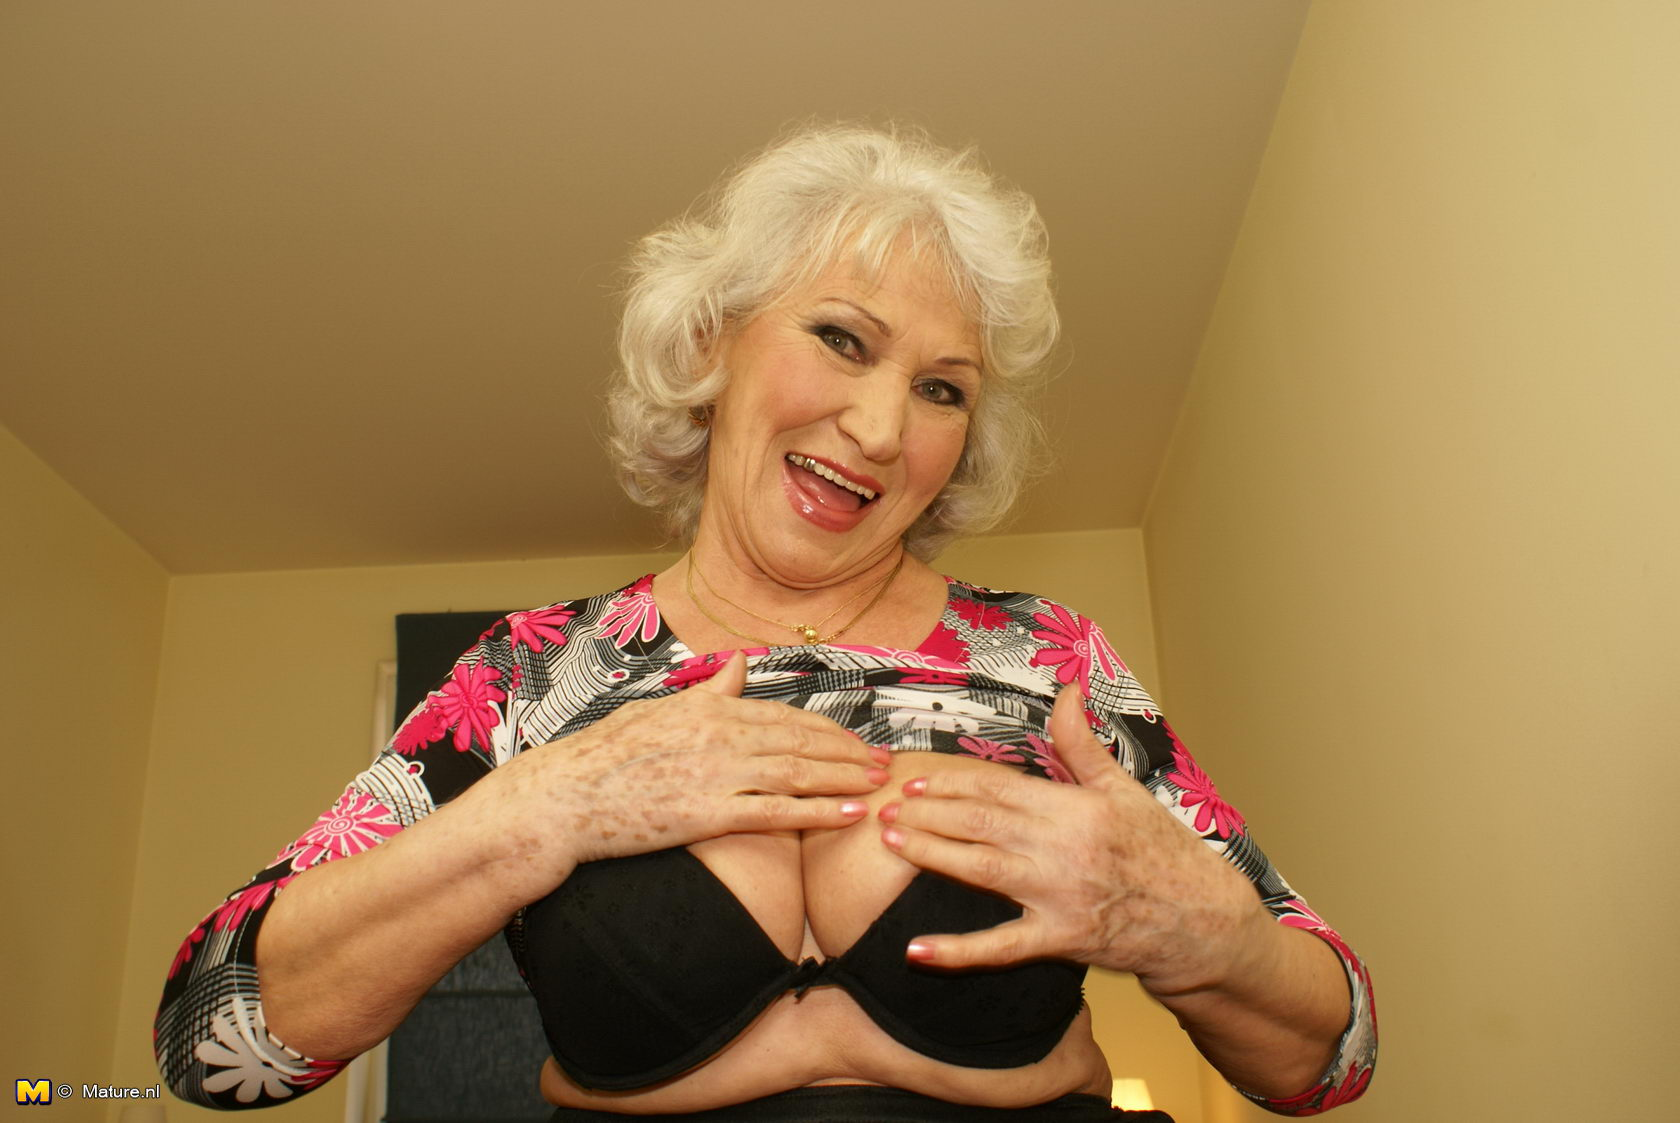 Granny loves to get nasty sorry